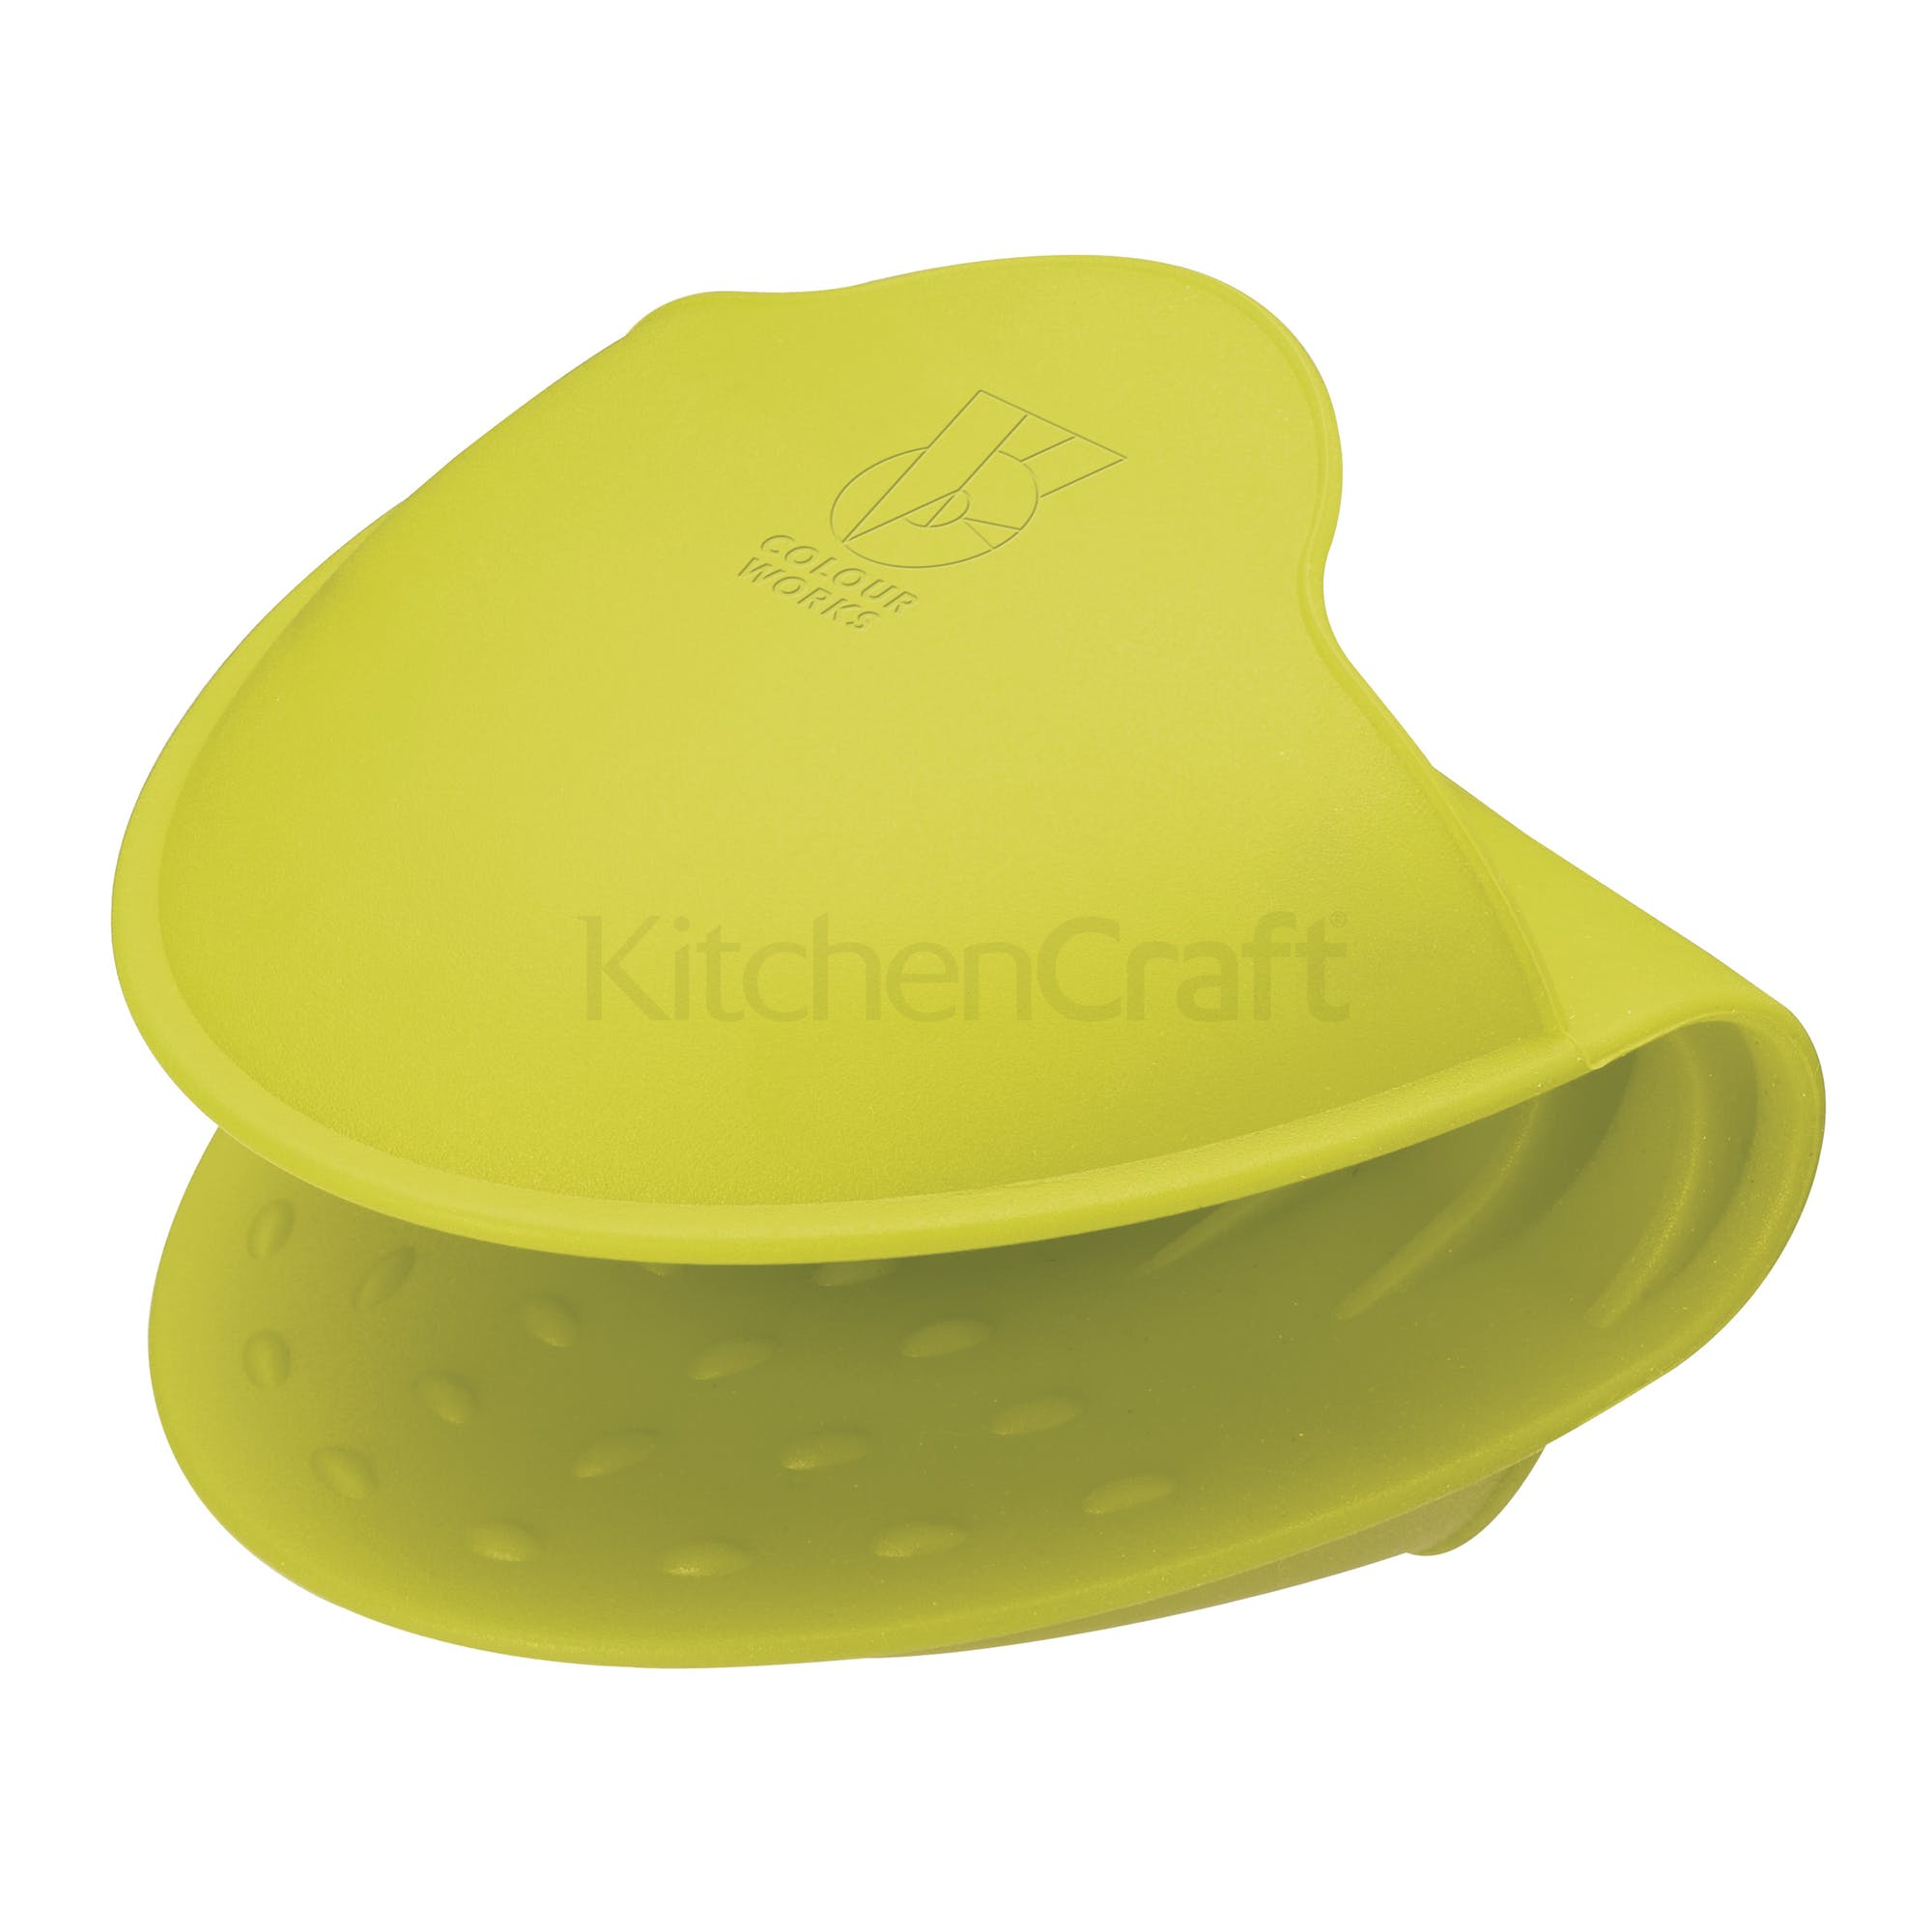 KITCHEN CRAFT, CWS, LÓT TAY, SILICONE